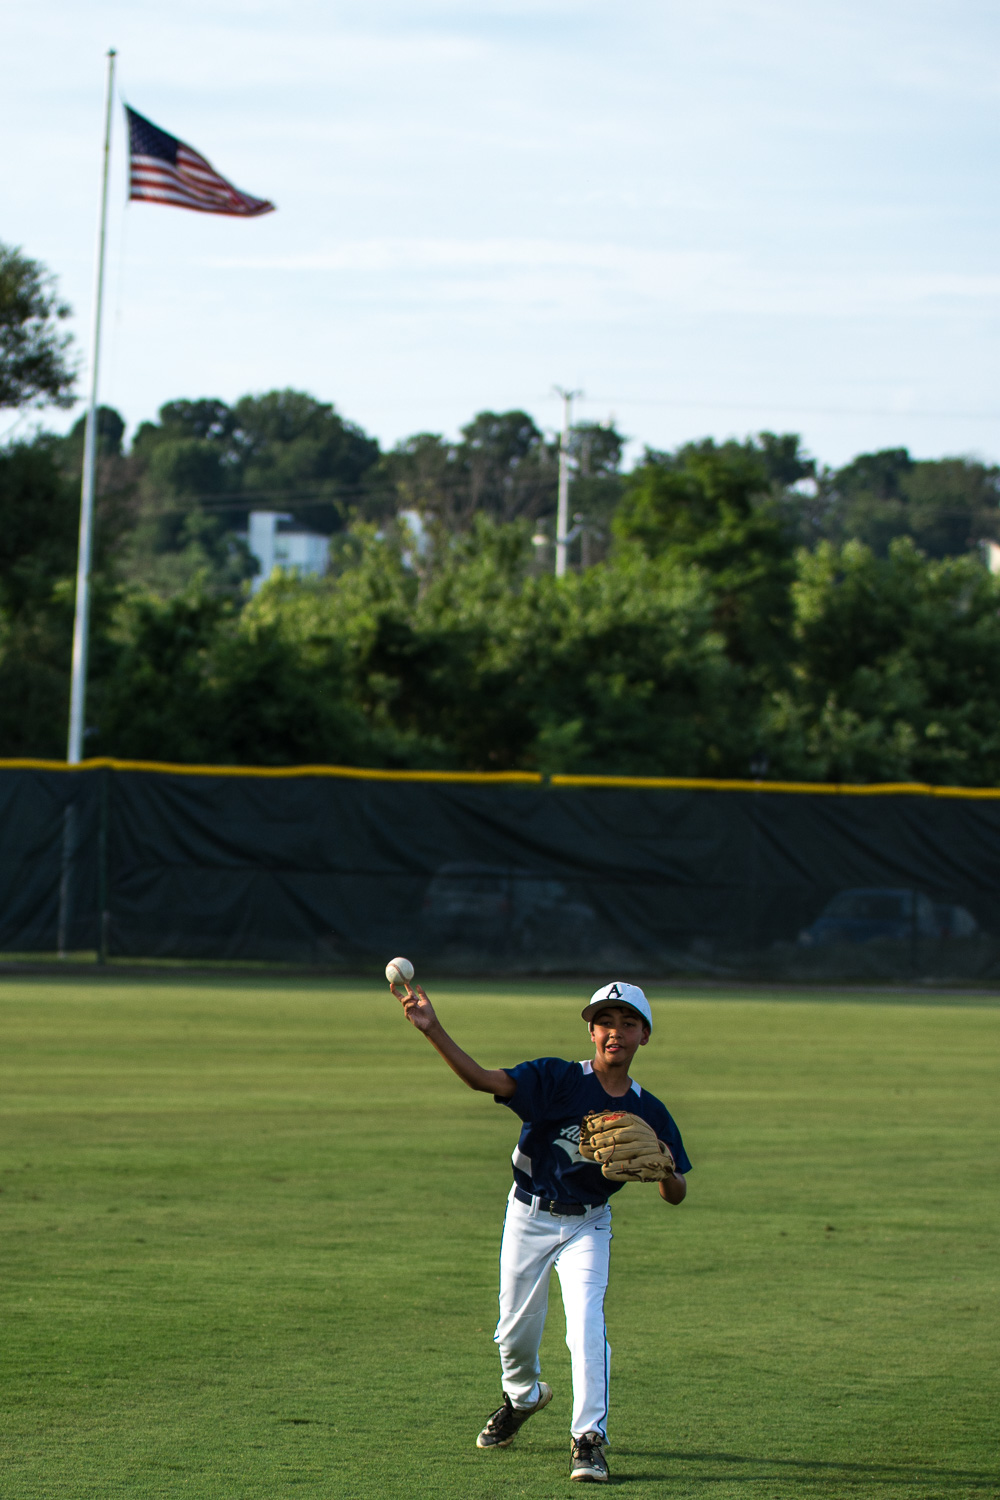 20160707 - DC Grays vs Aces-5652.jpg